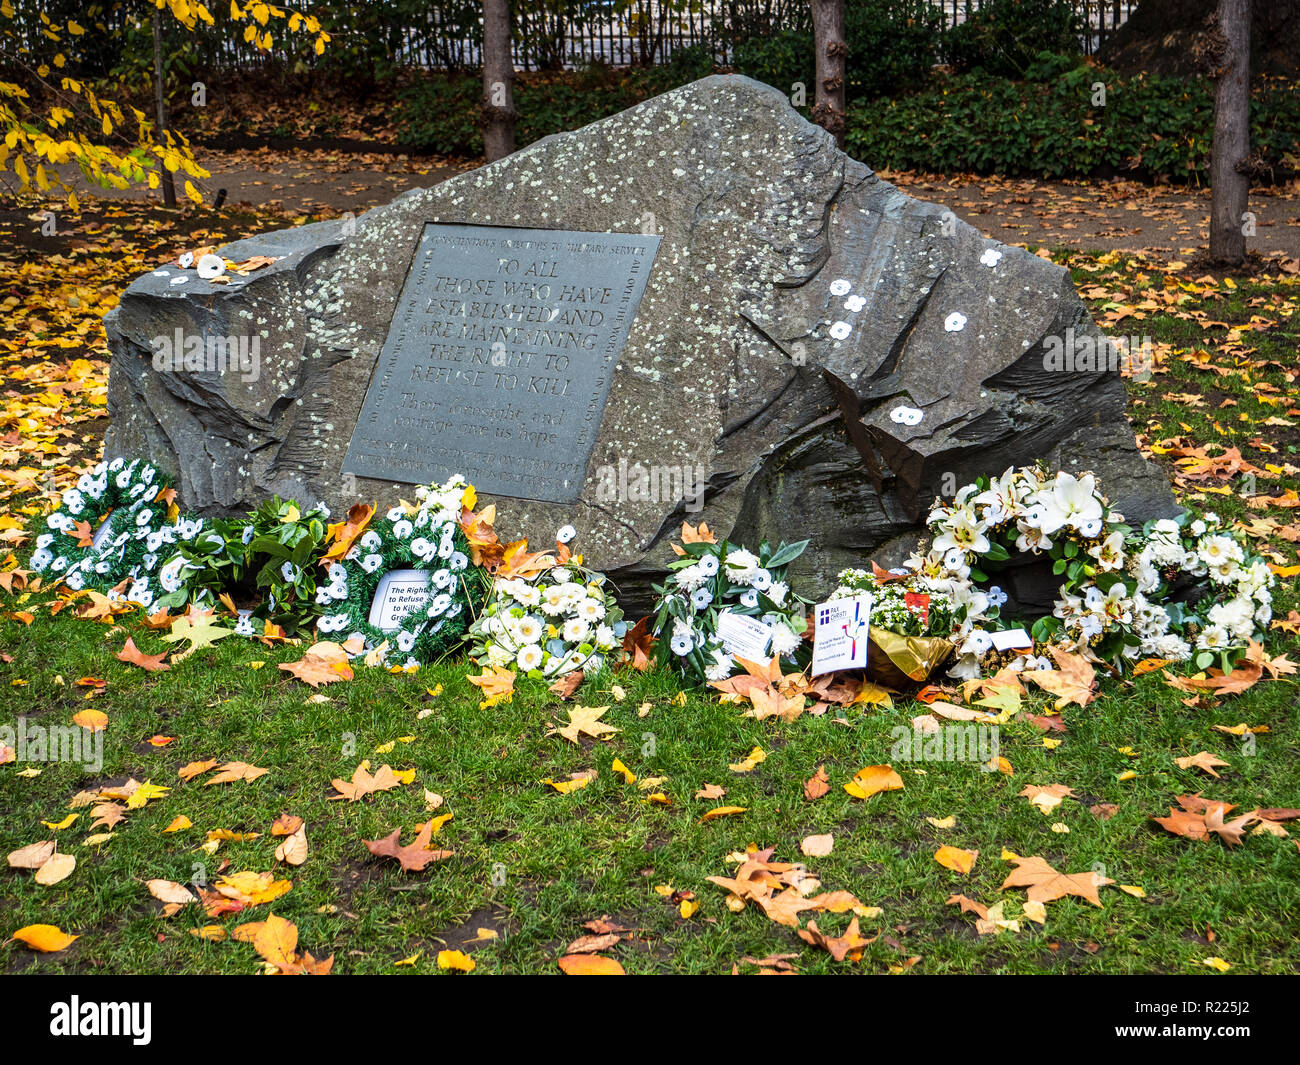 Conscientious Objectors' Commemorative Stone in Tavistock Square Gardens, Bloomsbury, London Unveiled 1994 by Sir Michael Tippett & Peace Pledge Union - Stock Image